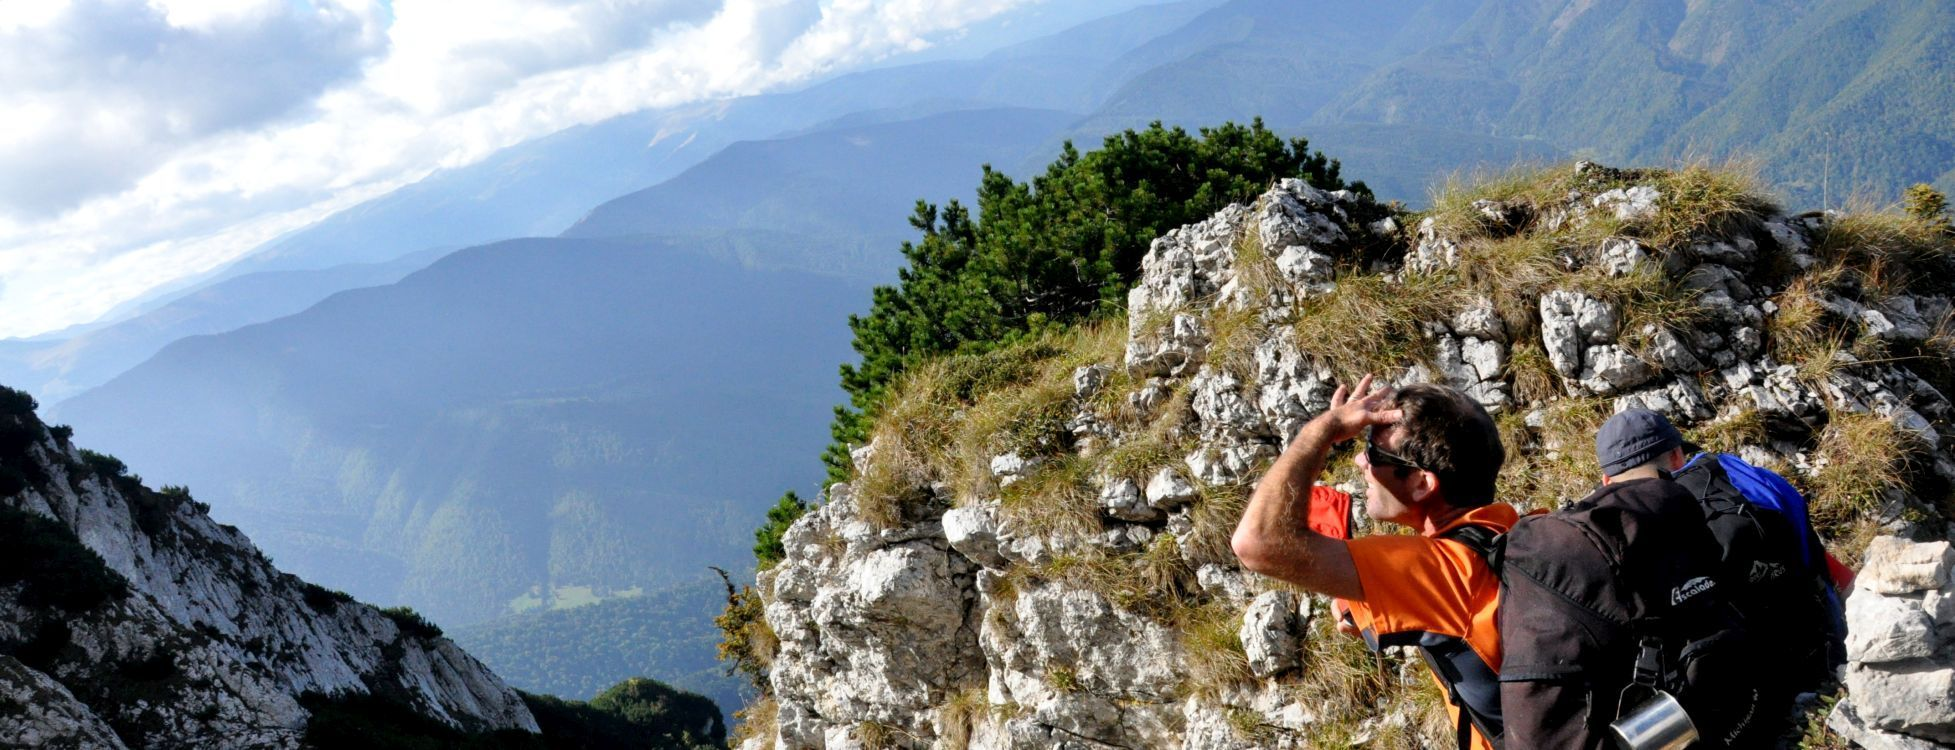 Private Active trekking tour in Piatra Craiului National Park  - 1 day